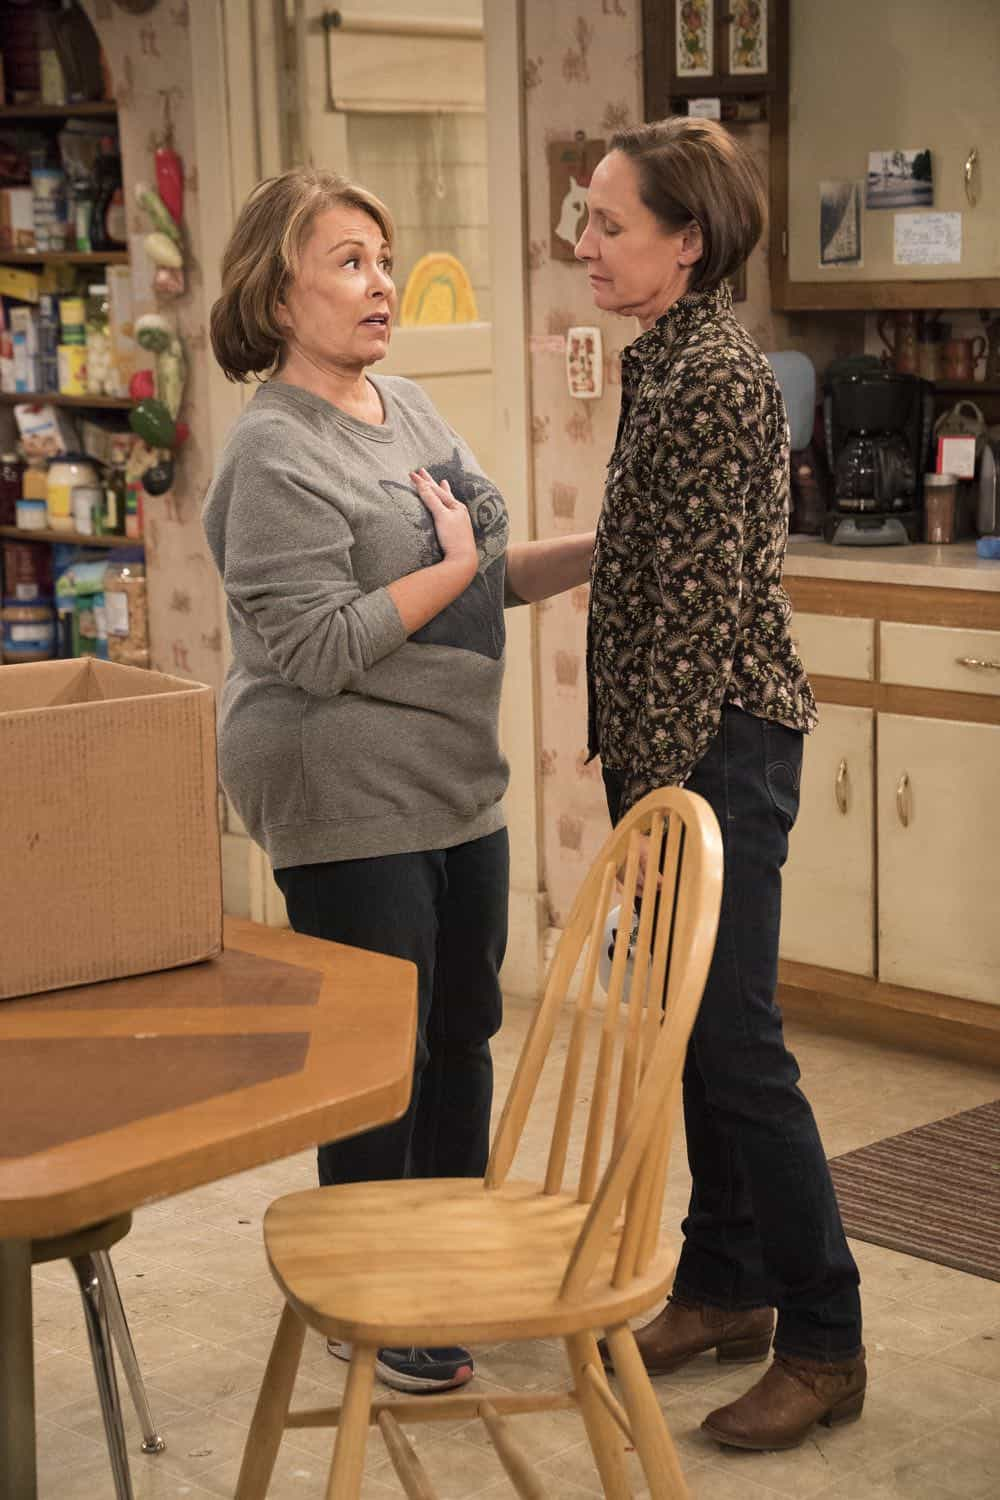 "ROSEANNE - ""No Country for Old Women"" - After Beverly gets kicked out of the nursing home, Roseanne and Jackie fight over who will take care of their mother. Meanwhile, Mark's creative touch with building a birdhouse for Dan's customer is more than Dan can handle, but Darlene defends her son, on the sixth episode of the revival of ""Roseanne,"" TUESDAY, MAY 1 (8:00-8:30 p.m. EDT), on The ABC Television Network. (ABC/Greg Gayne) ROSEANNE BARR, LAURIE METCALF"